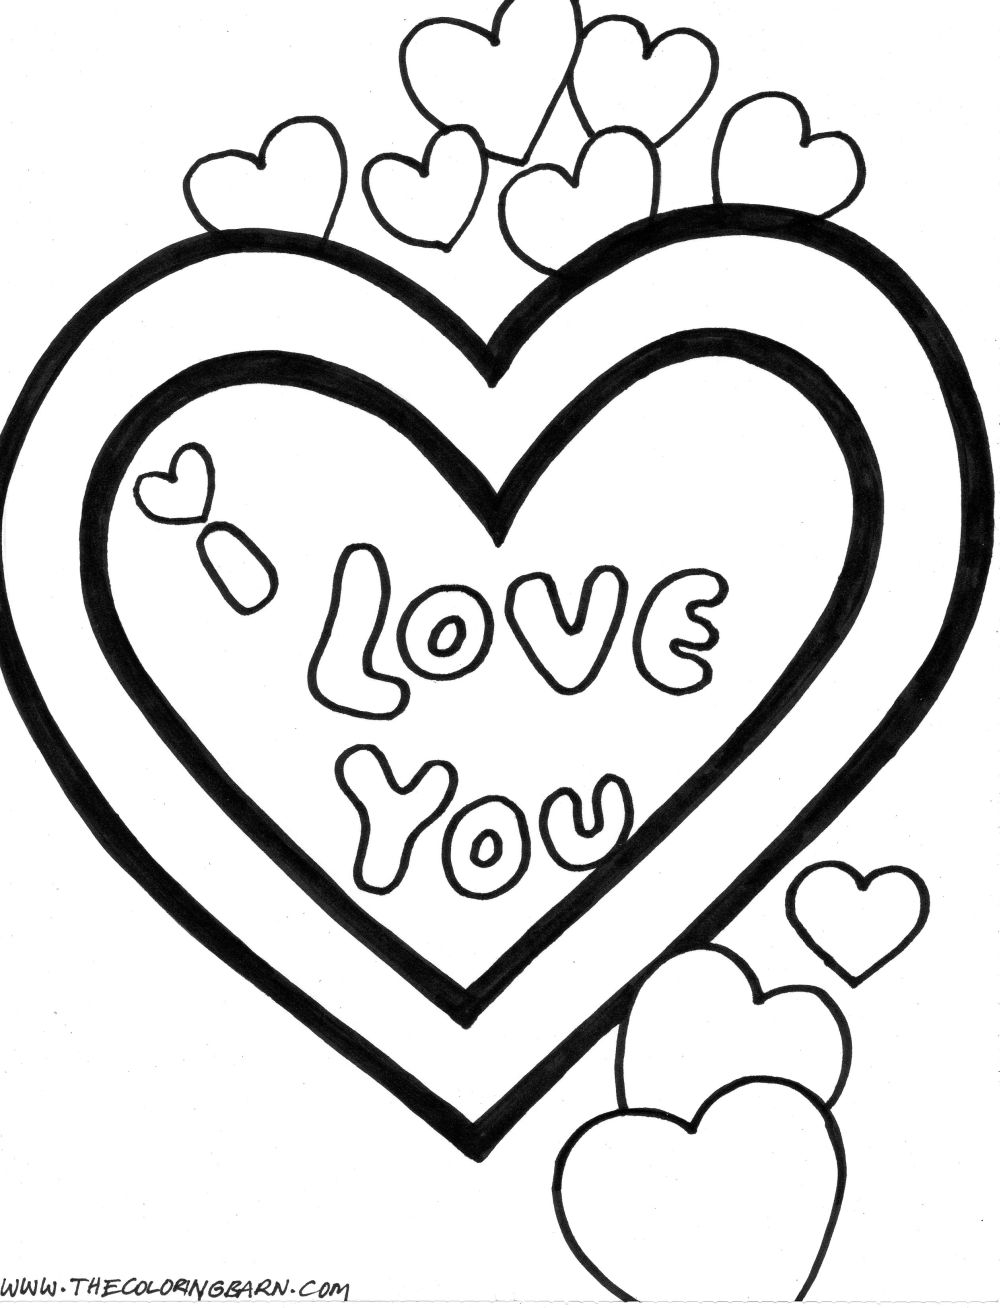 Coloring Pages for Valentines Printable Valentines Day Cards Teddy Collection Of I Love You Free Valentines S0189 Coloring Pages Printable Collection